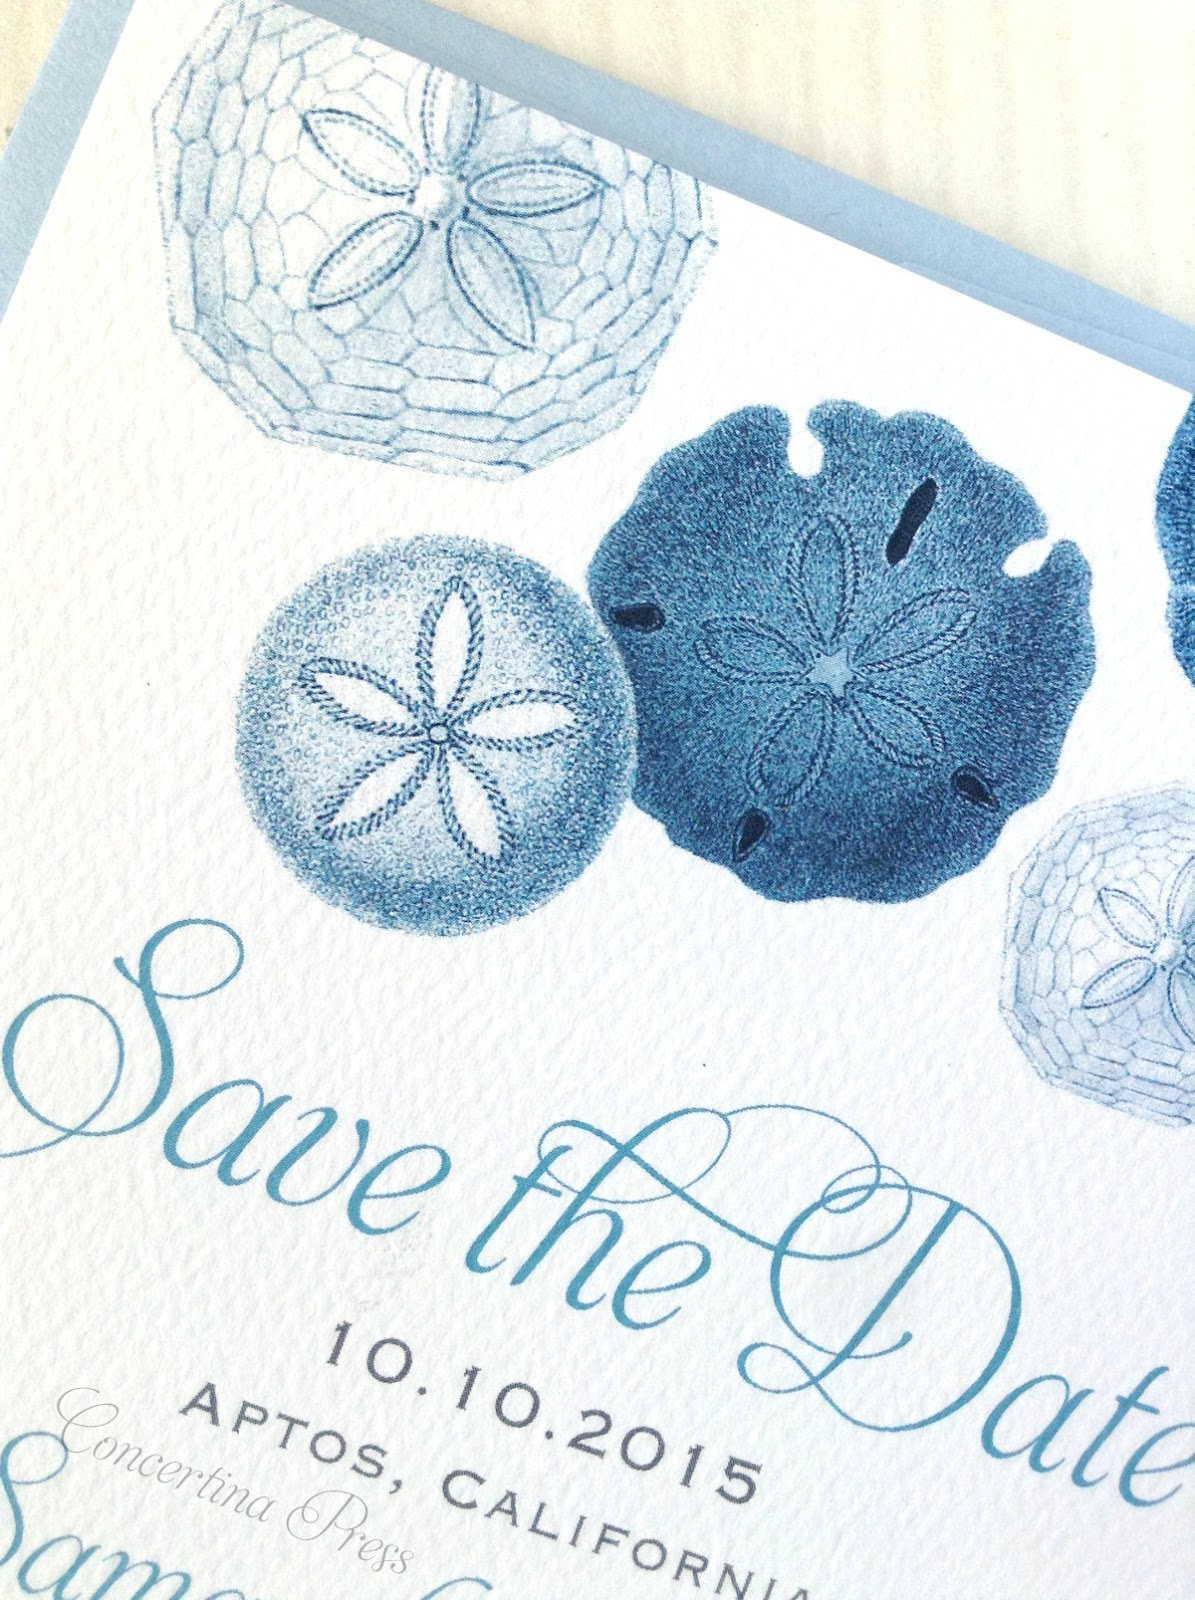 Sand Dollar Save the Dates from Concertina Press